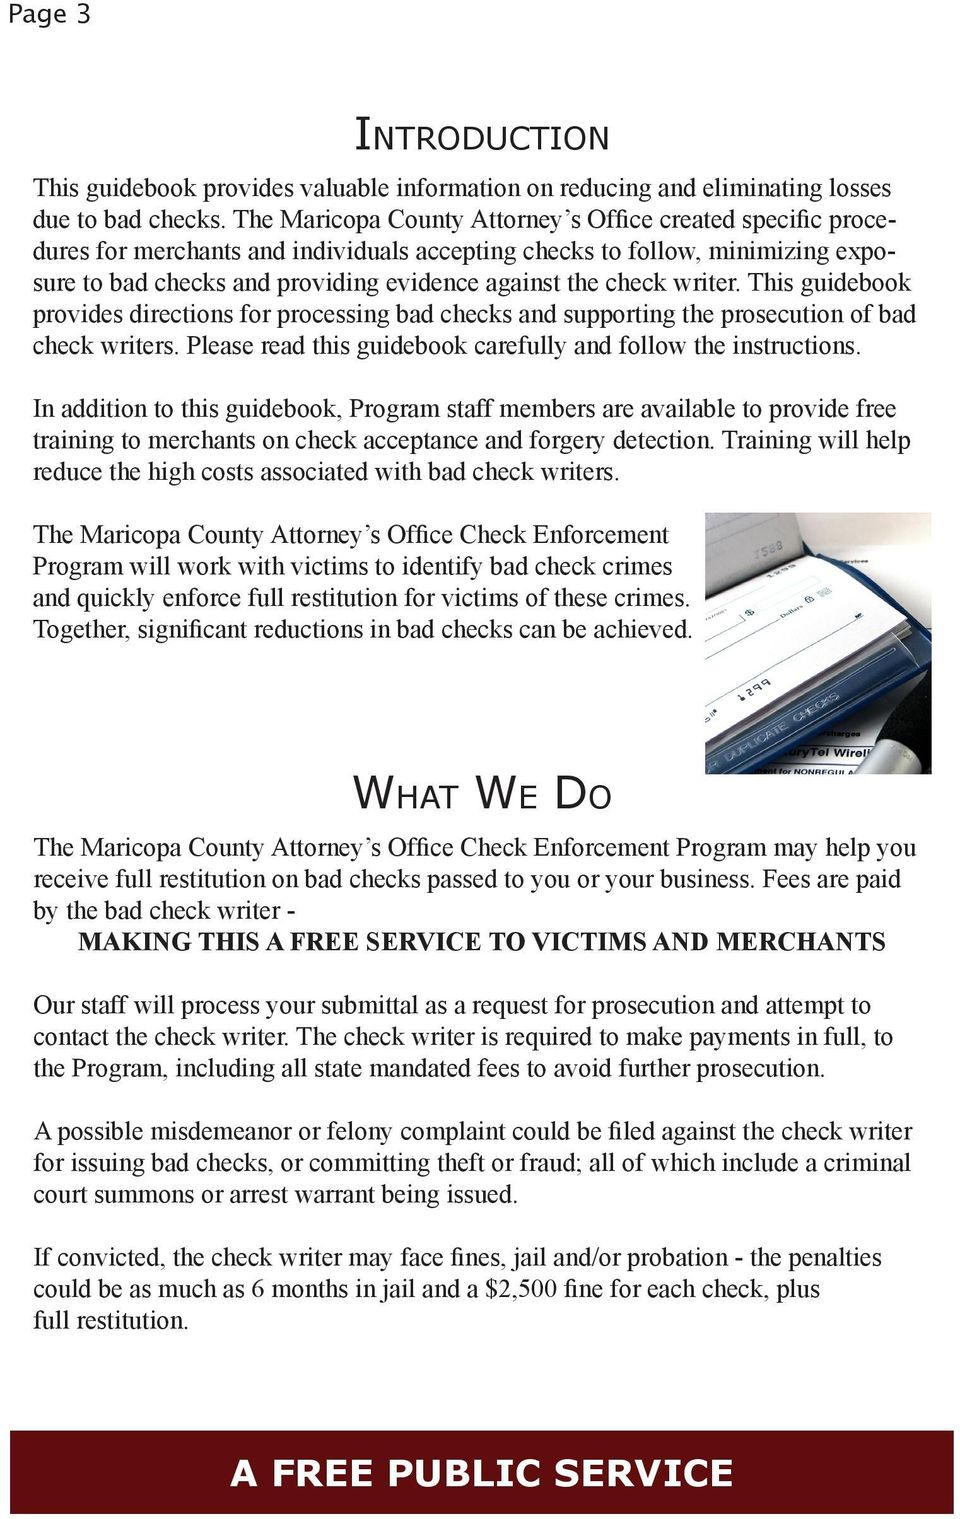 writer. This guidebook provides directions for processing bad checks and supporting the prosecution of bad check writers. Please read this guidebook carefully and follow the instructions.